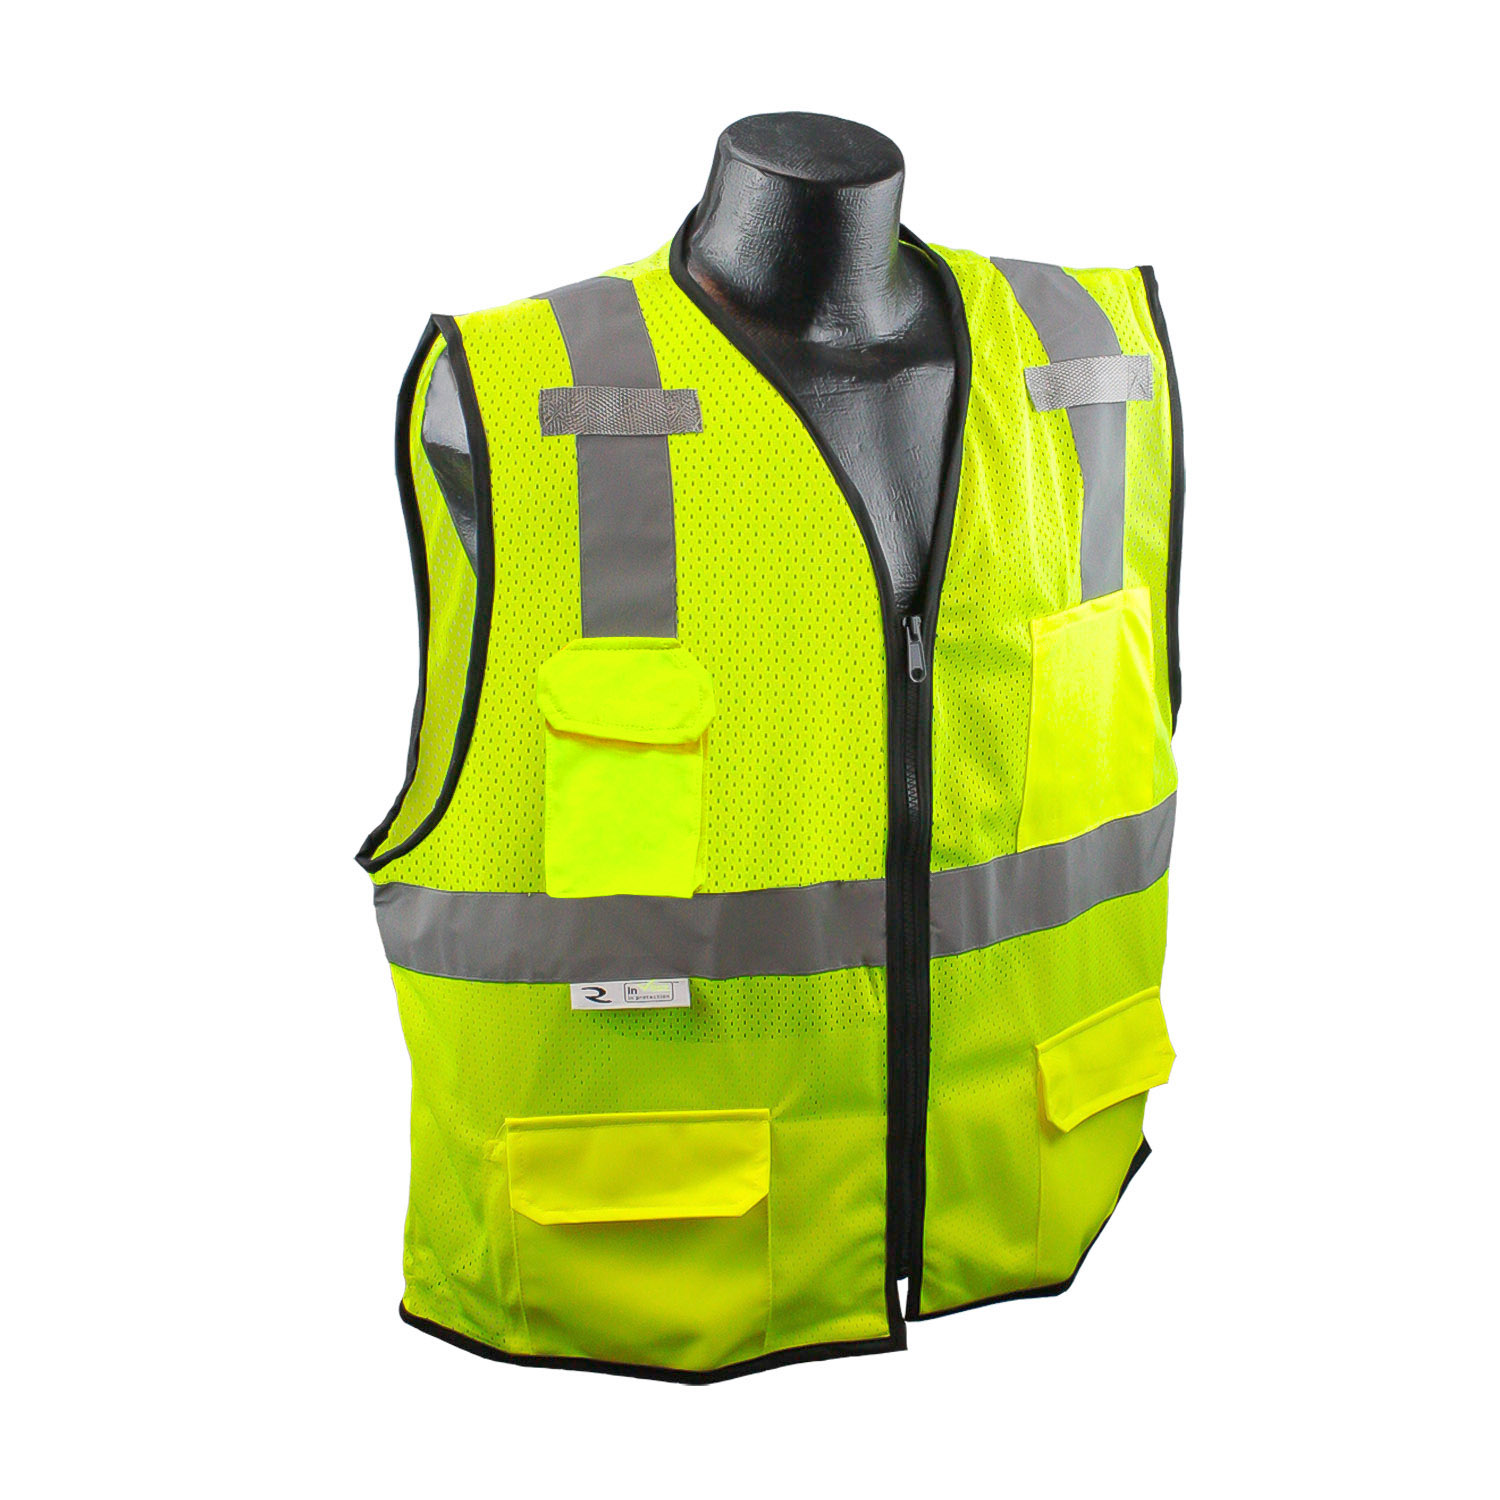 Radians SV7E Surveyor Type R Class 2 Safety Vest